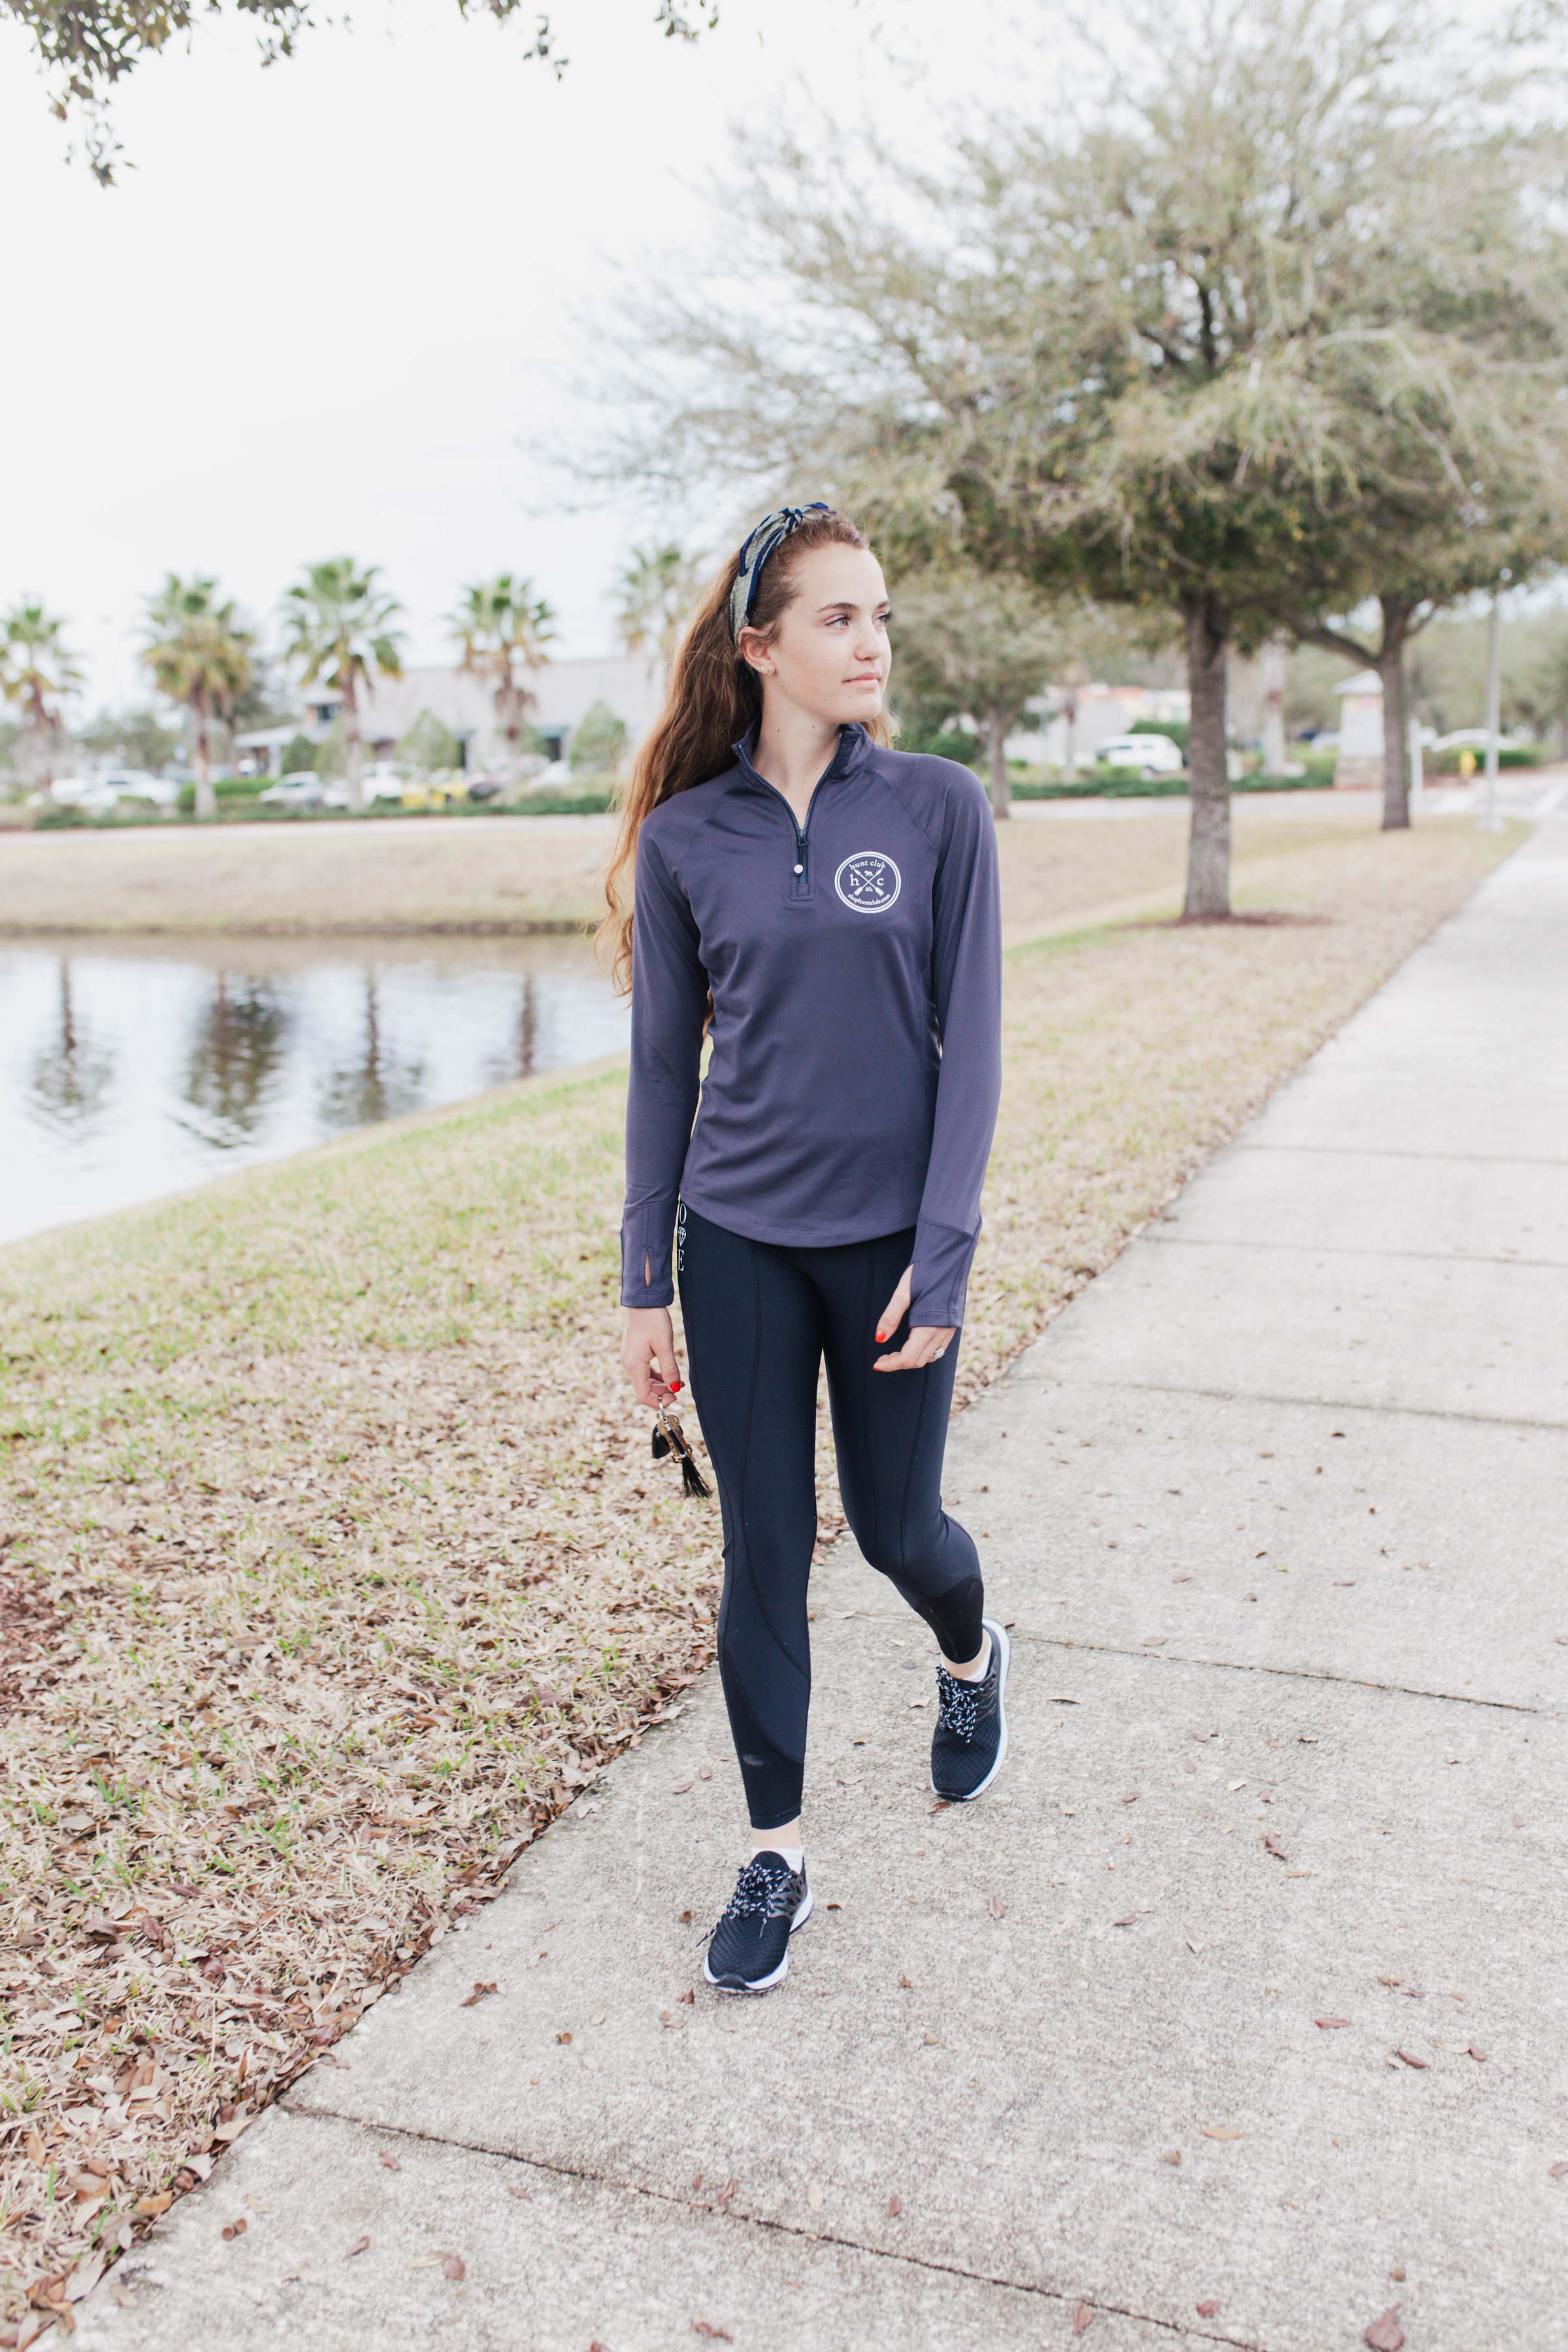 The material is just lovely: soft, smooth and breathable. The thumb holes are ideal and the hemline makes it easy to tuck in but so adorable to leave out over some leggings.